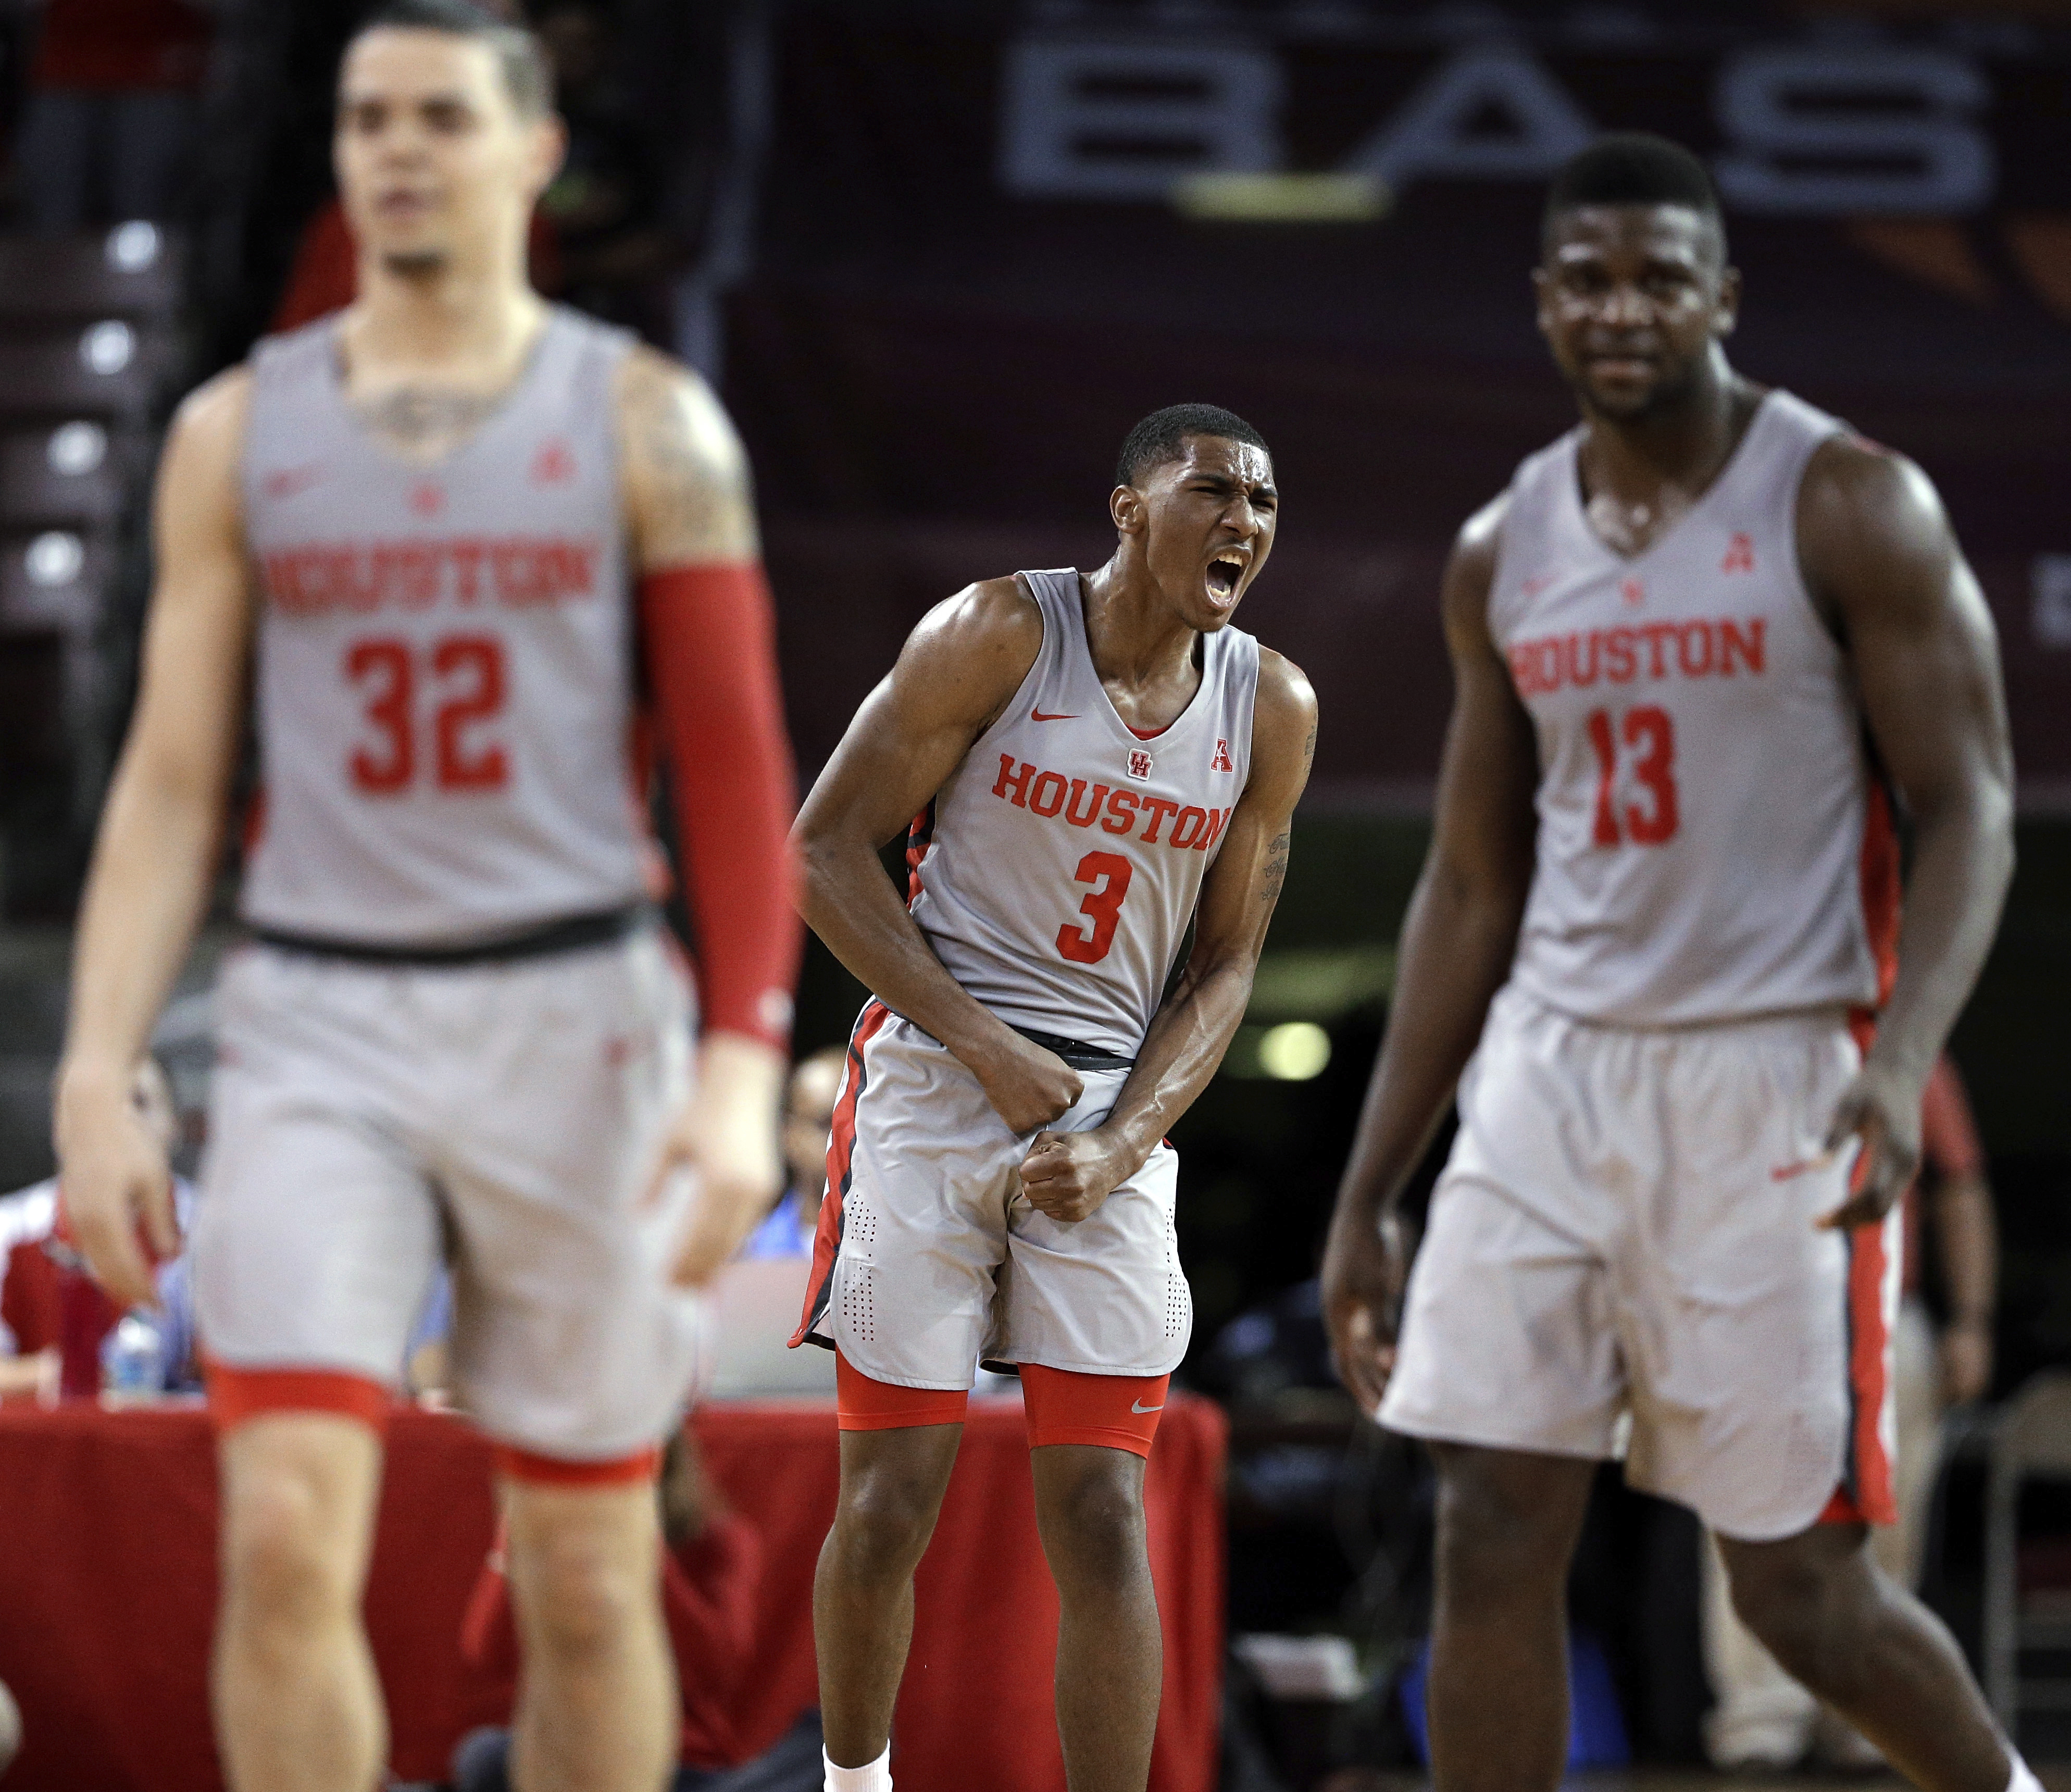 <div class='meta'><div class='origin-logo' data-origin='AP'></div><span class='caption-text' data-credit='Michael Wyke'>Houston guard Armoni Brooks (3) reacts after making a 3-point shot as guard Rob Gray (32) and forward Nura Zanna (13) head for the bench during a timeout in the second half.</span></div>